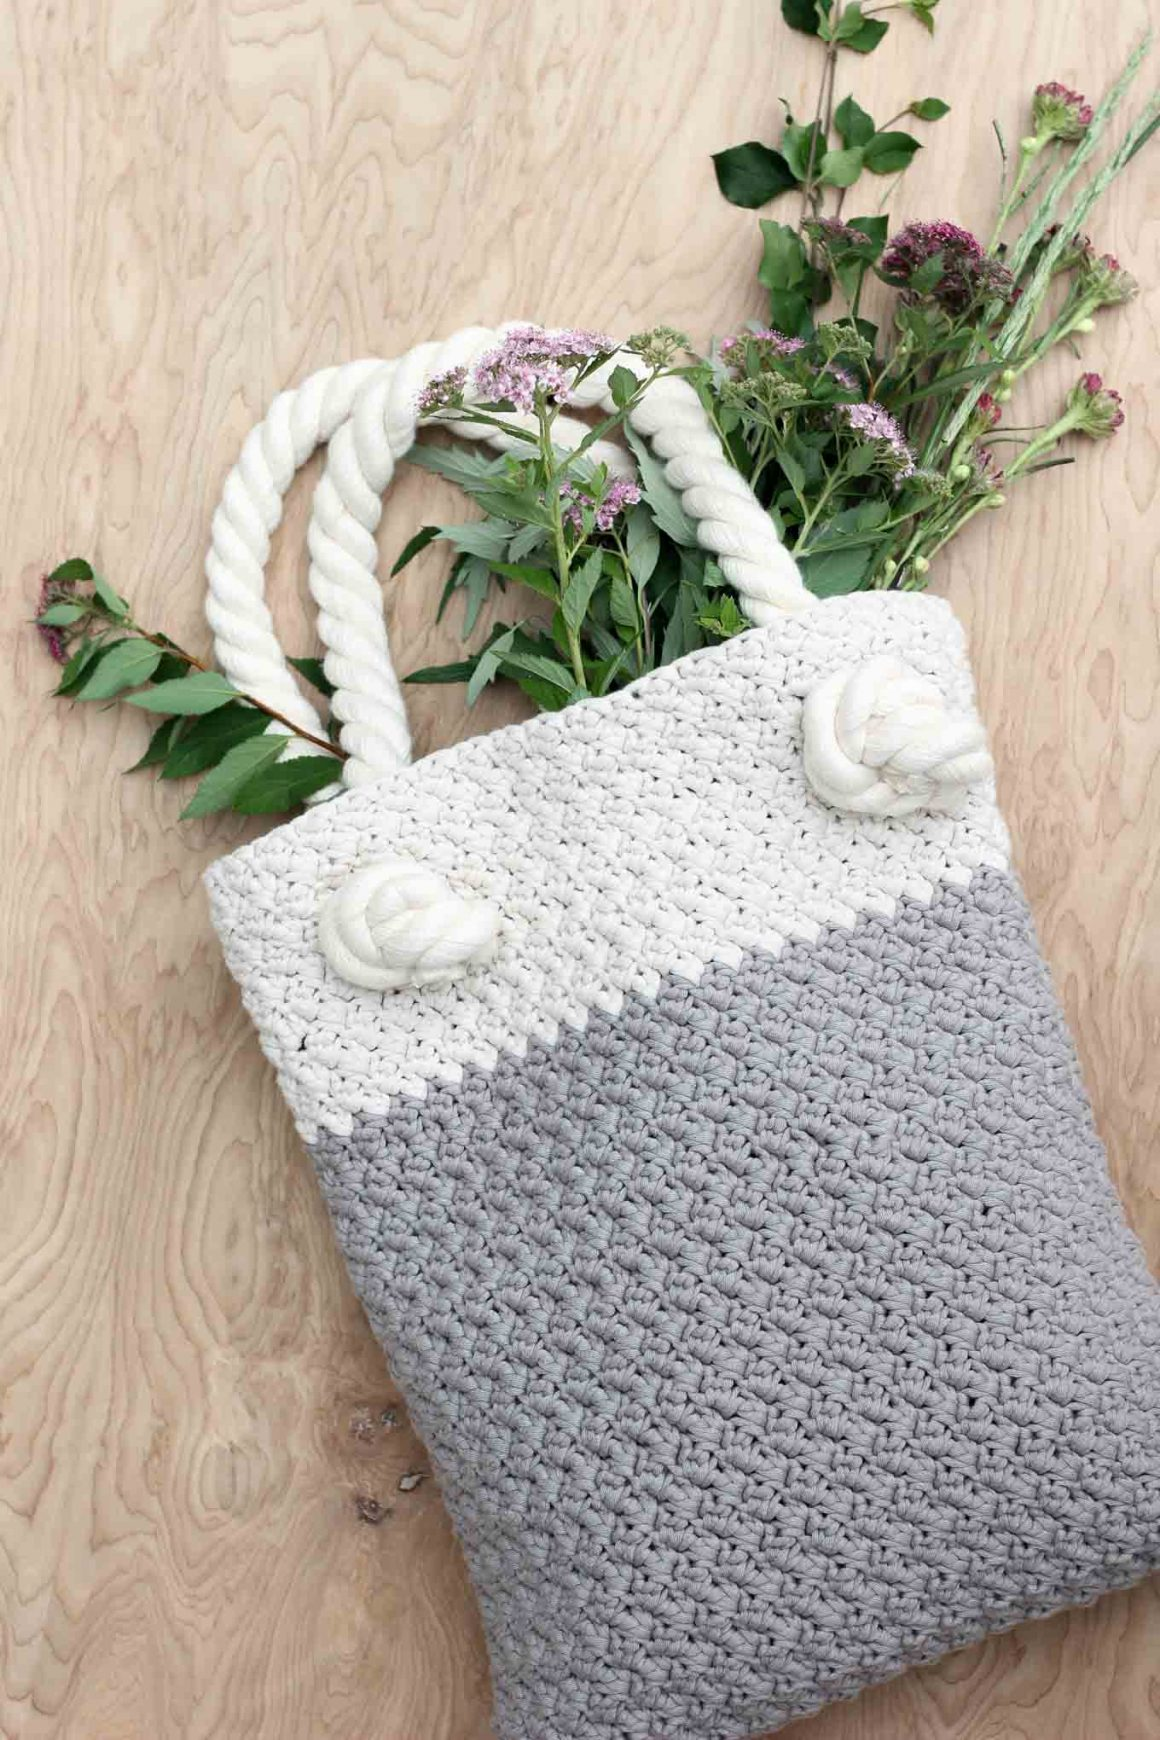 27 Crochet Projects That Are Going To Make You Want To Pick Up Your Crochet Hook: Suzette Crochet Tote Bag Pattern from Make and Do Crew